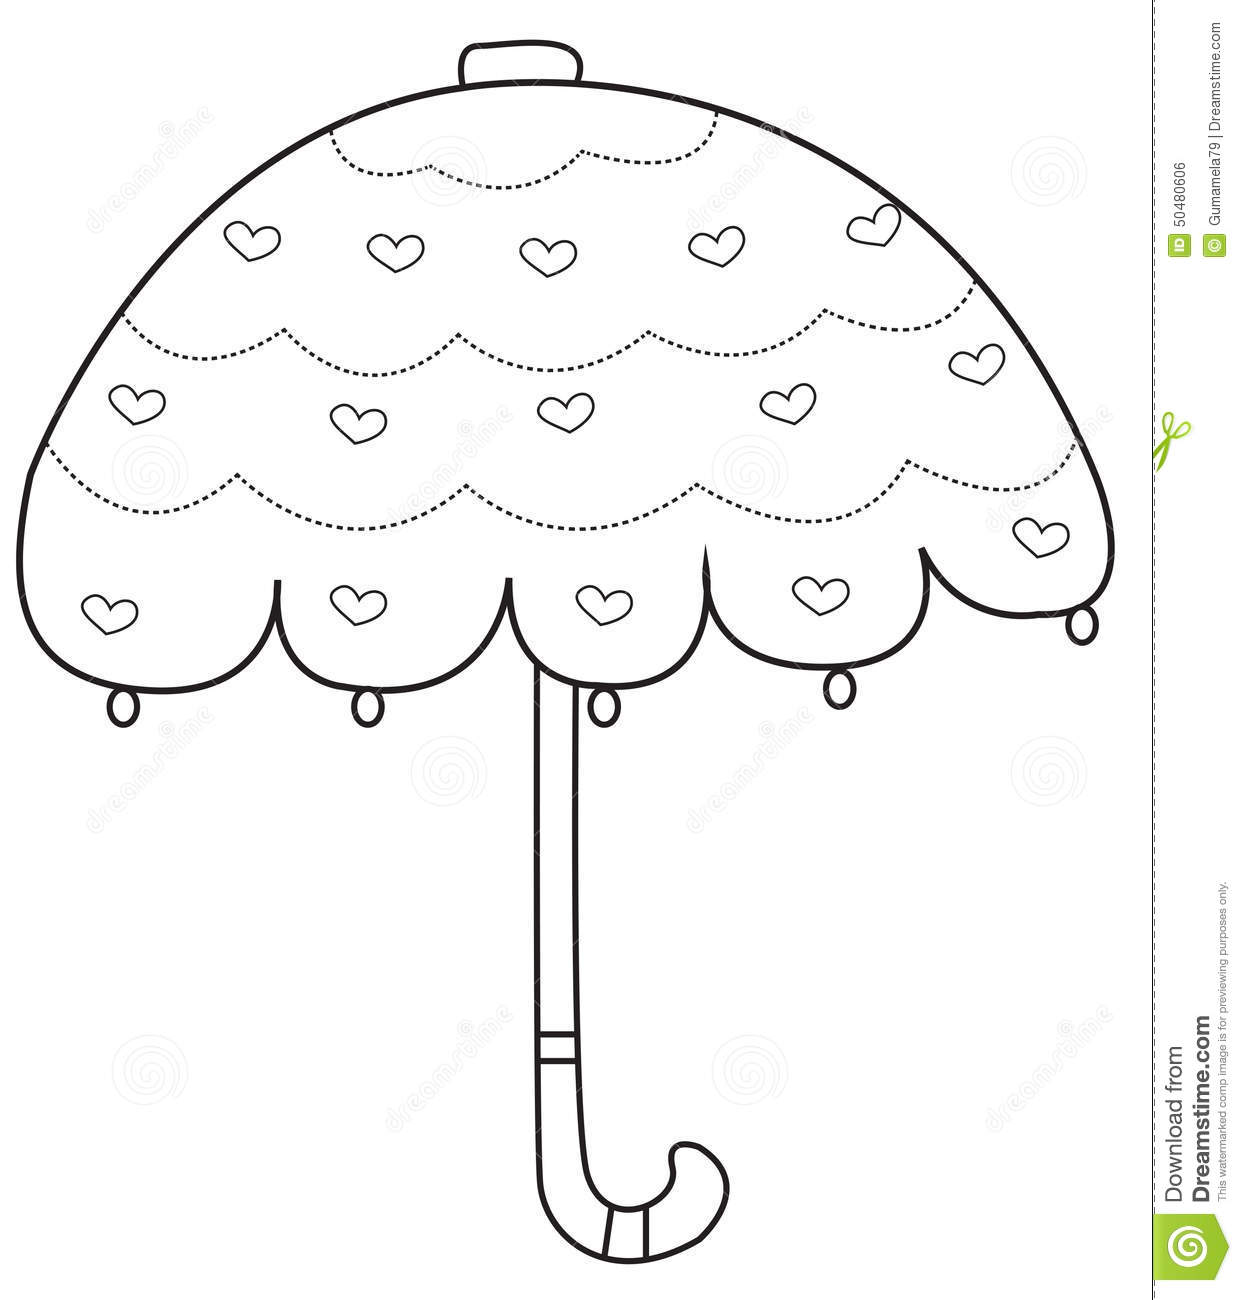 Umbrella coloring page stock illustration. Illustration of abstract ...